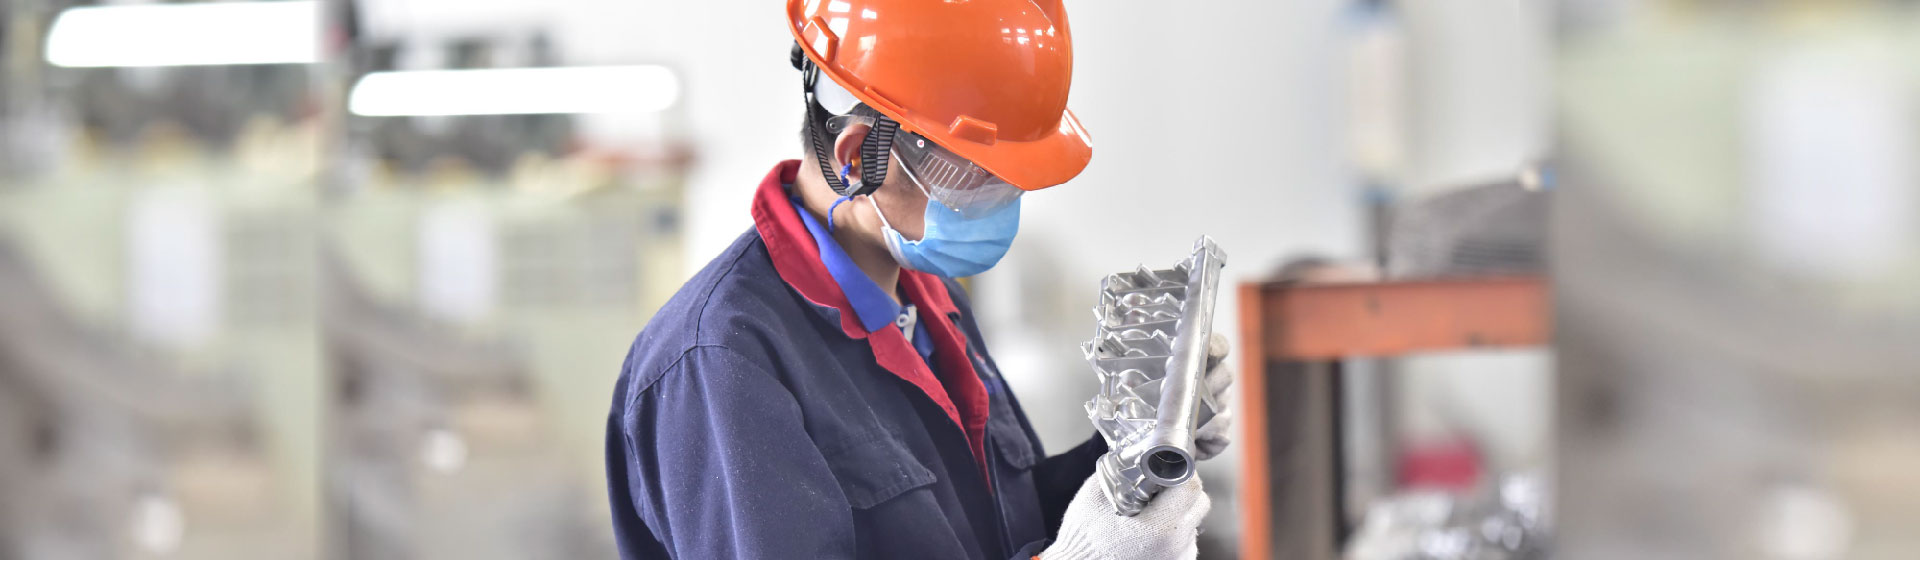 Self-inspection on aluminum die casting production